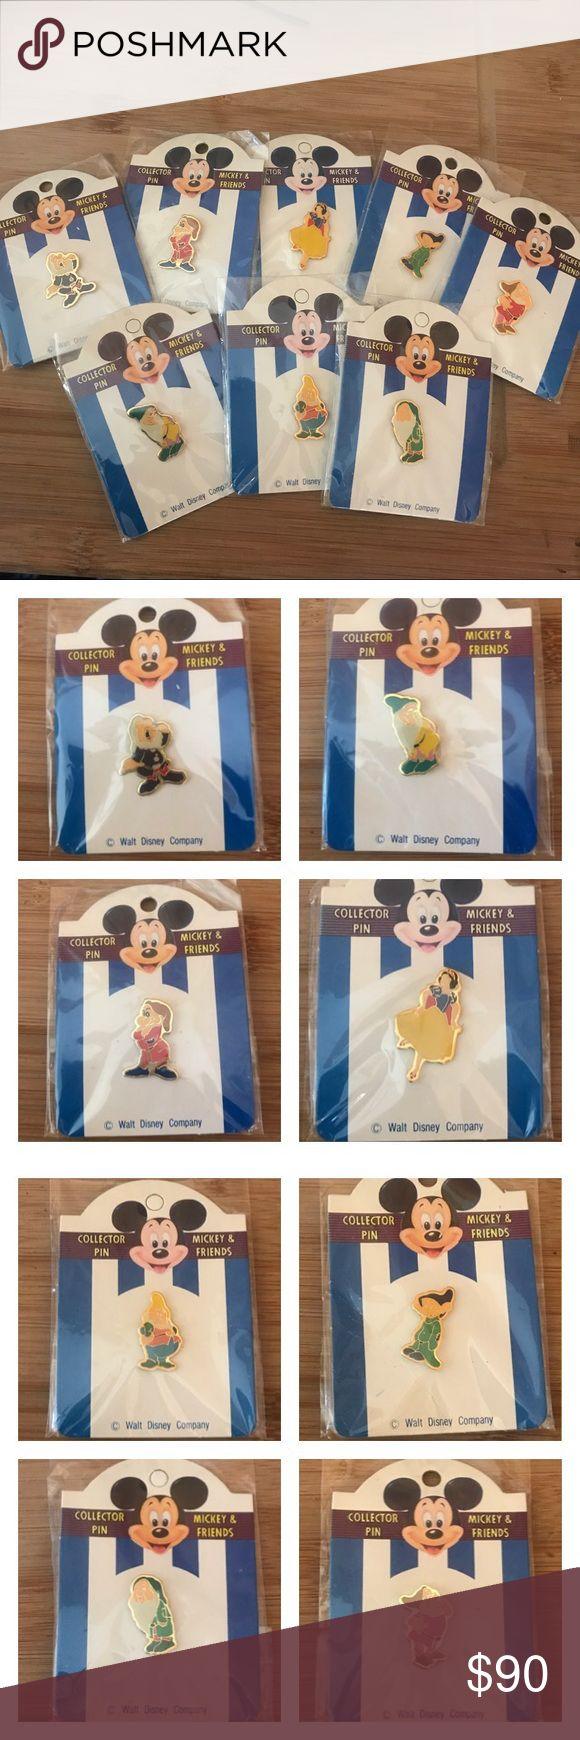 Htf! Snow White and the seven dwarfs collectors Hard to find ! !Very rare new in package Disney Snow White and the seven dwarfs collectors pins ! New in package vintage Disney pins ! #vintage #disney #collectors #snowwhite Disney Other